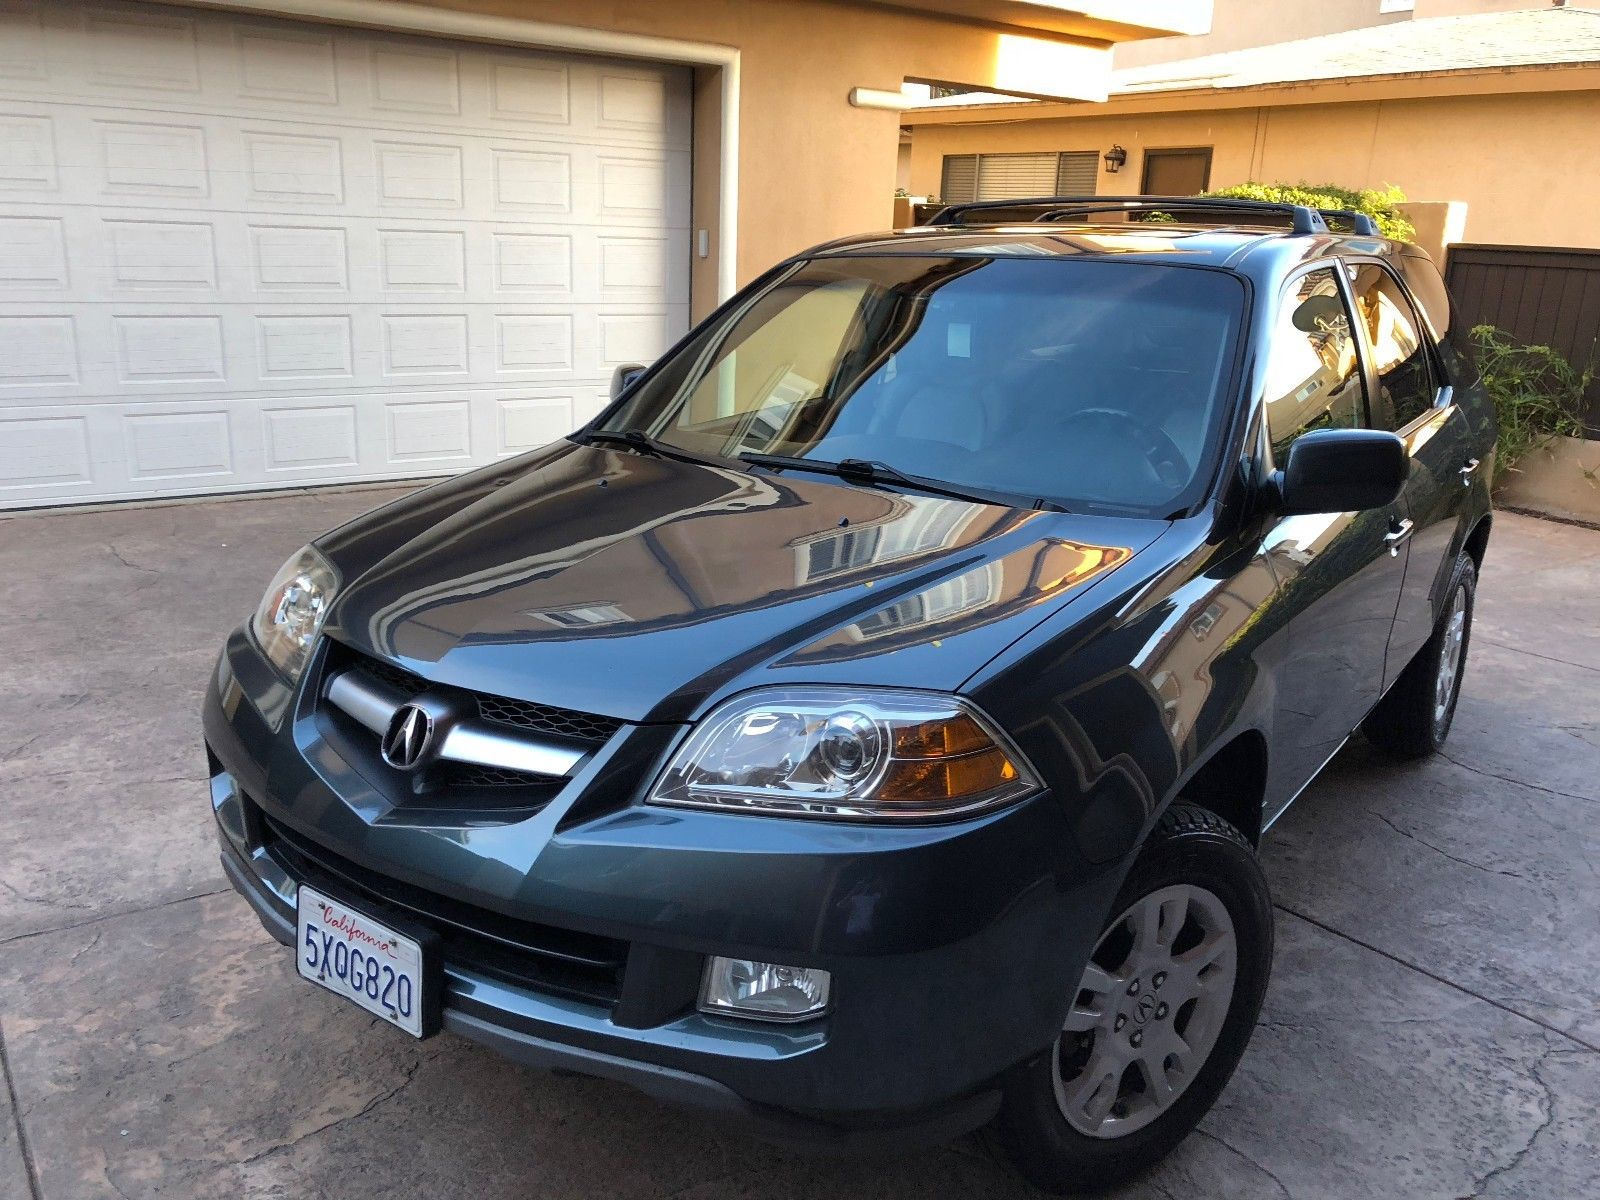 Amazing 2006 Acura MDX Touring 2006 Acura MDX AppleCar Play Backup Camera  1yr Old Tires Front/rear Dashcam 2017/2018